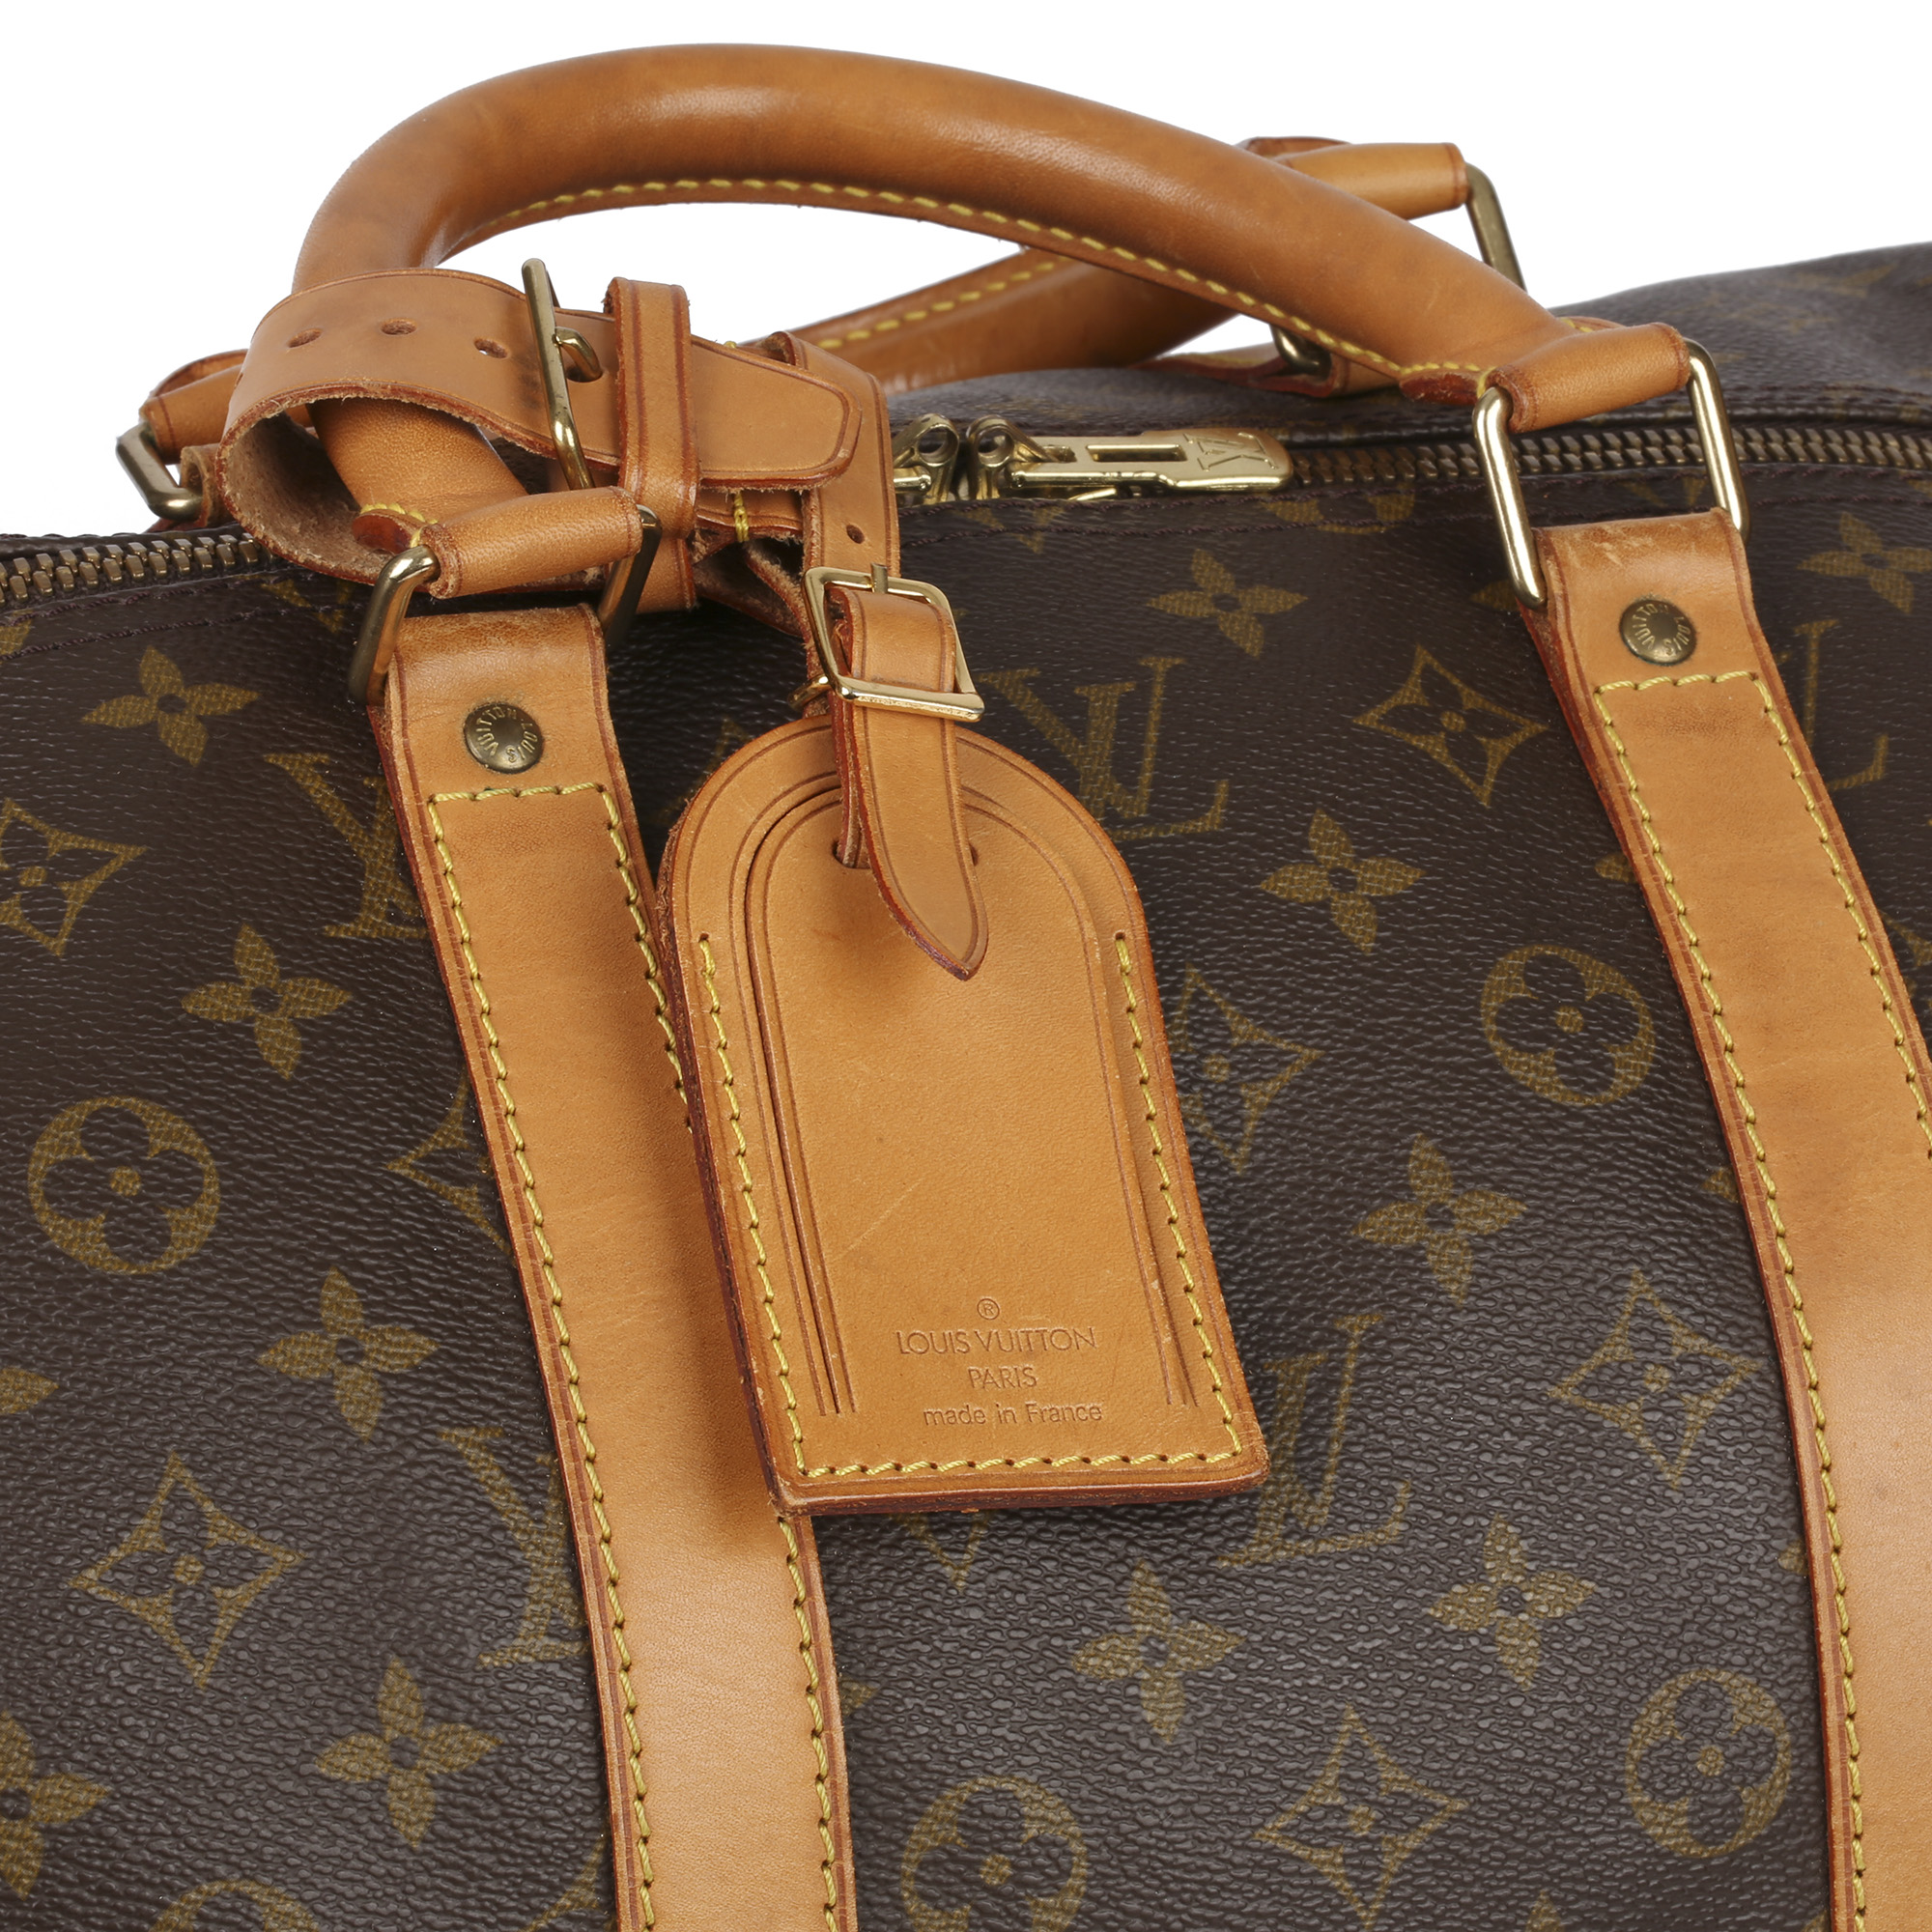 Louis Vuitton Brown Monogram Coated Canvas & Vachetta Leather Vintage Keepall 55 Bandoulire - Image 6 of 10